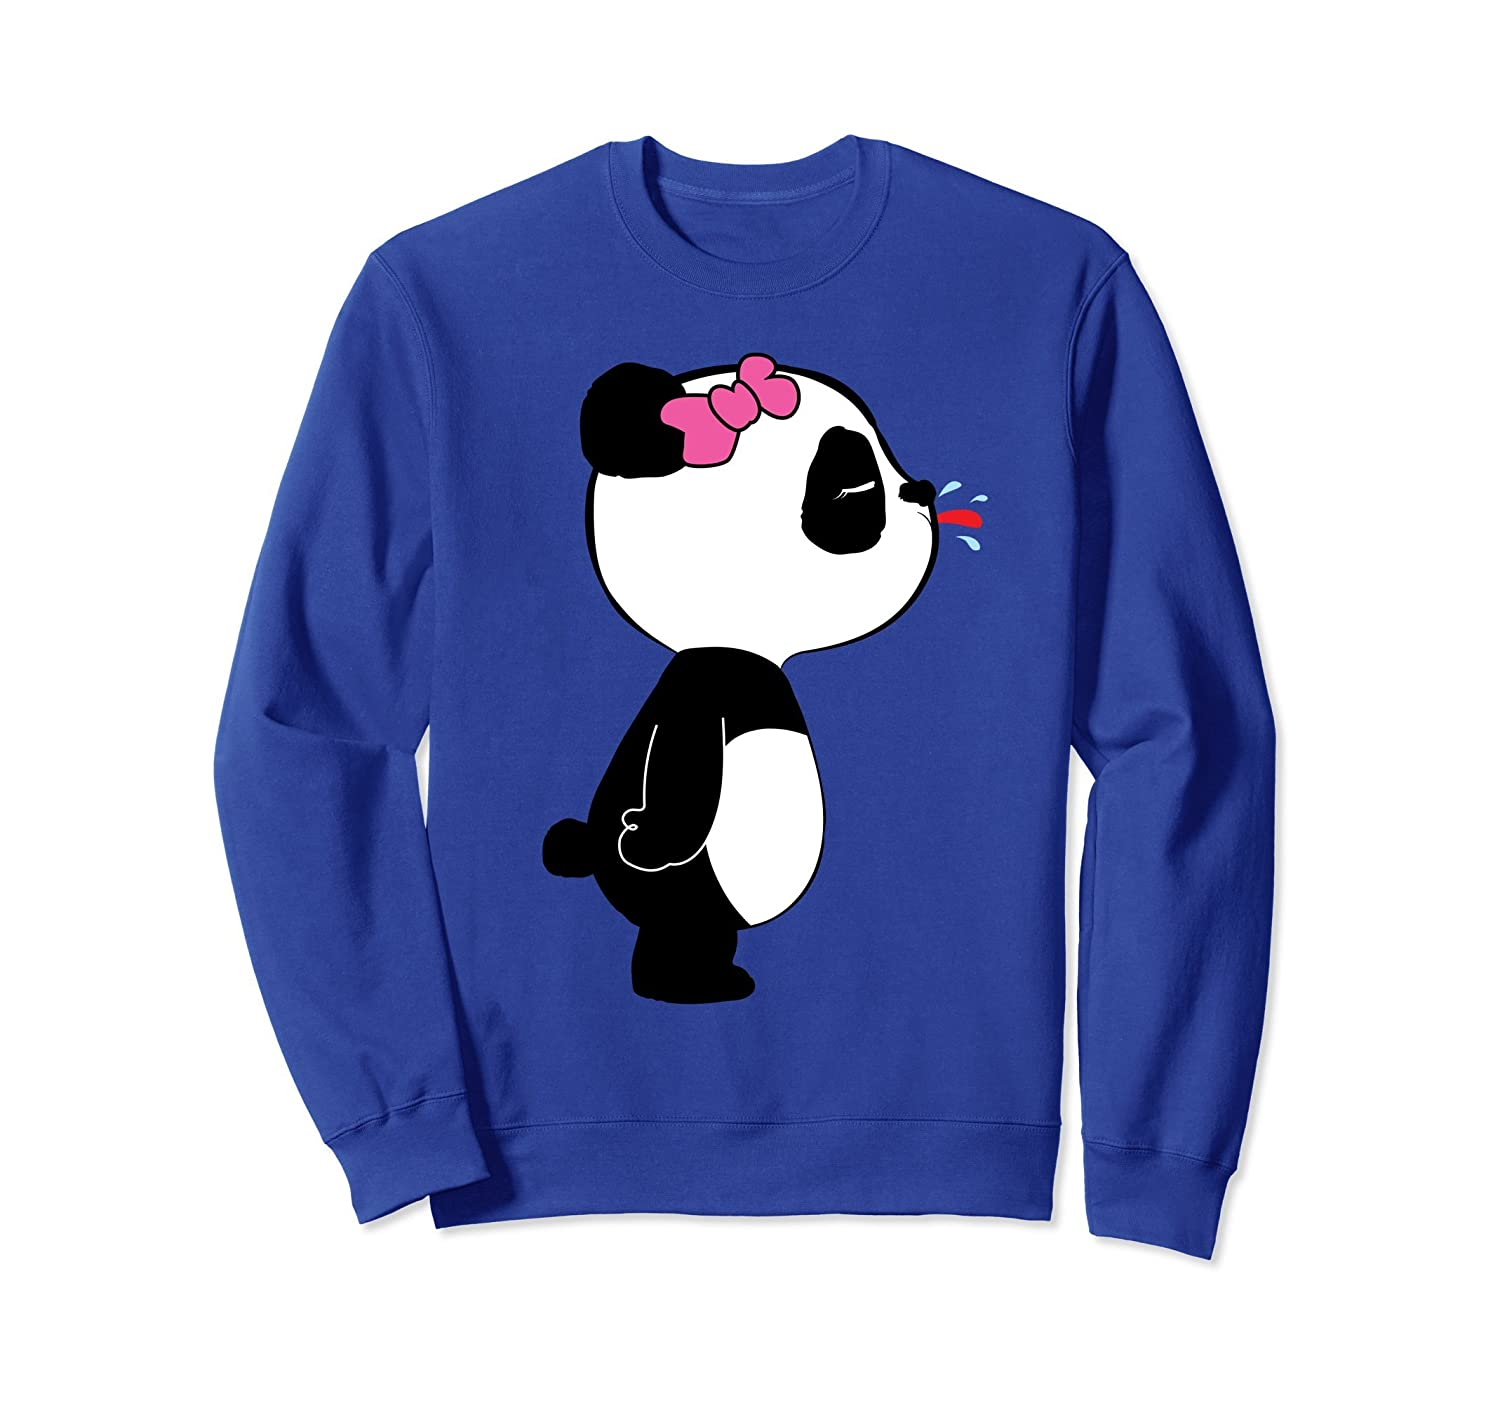 Cute Panda Sweatshirt for Women and Girls-mt